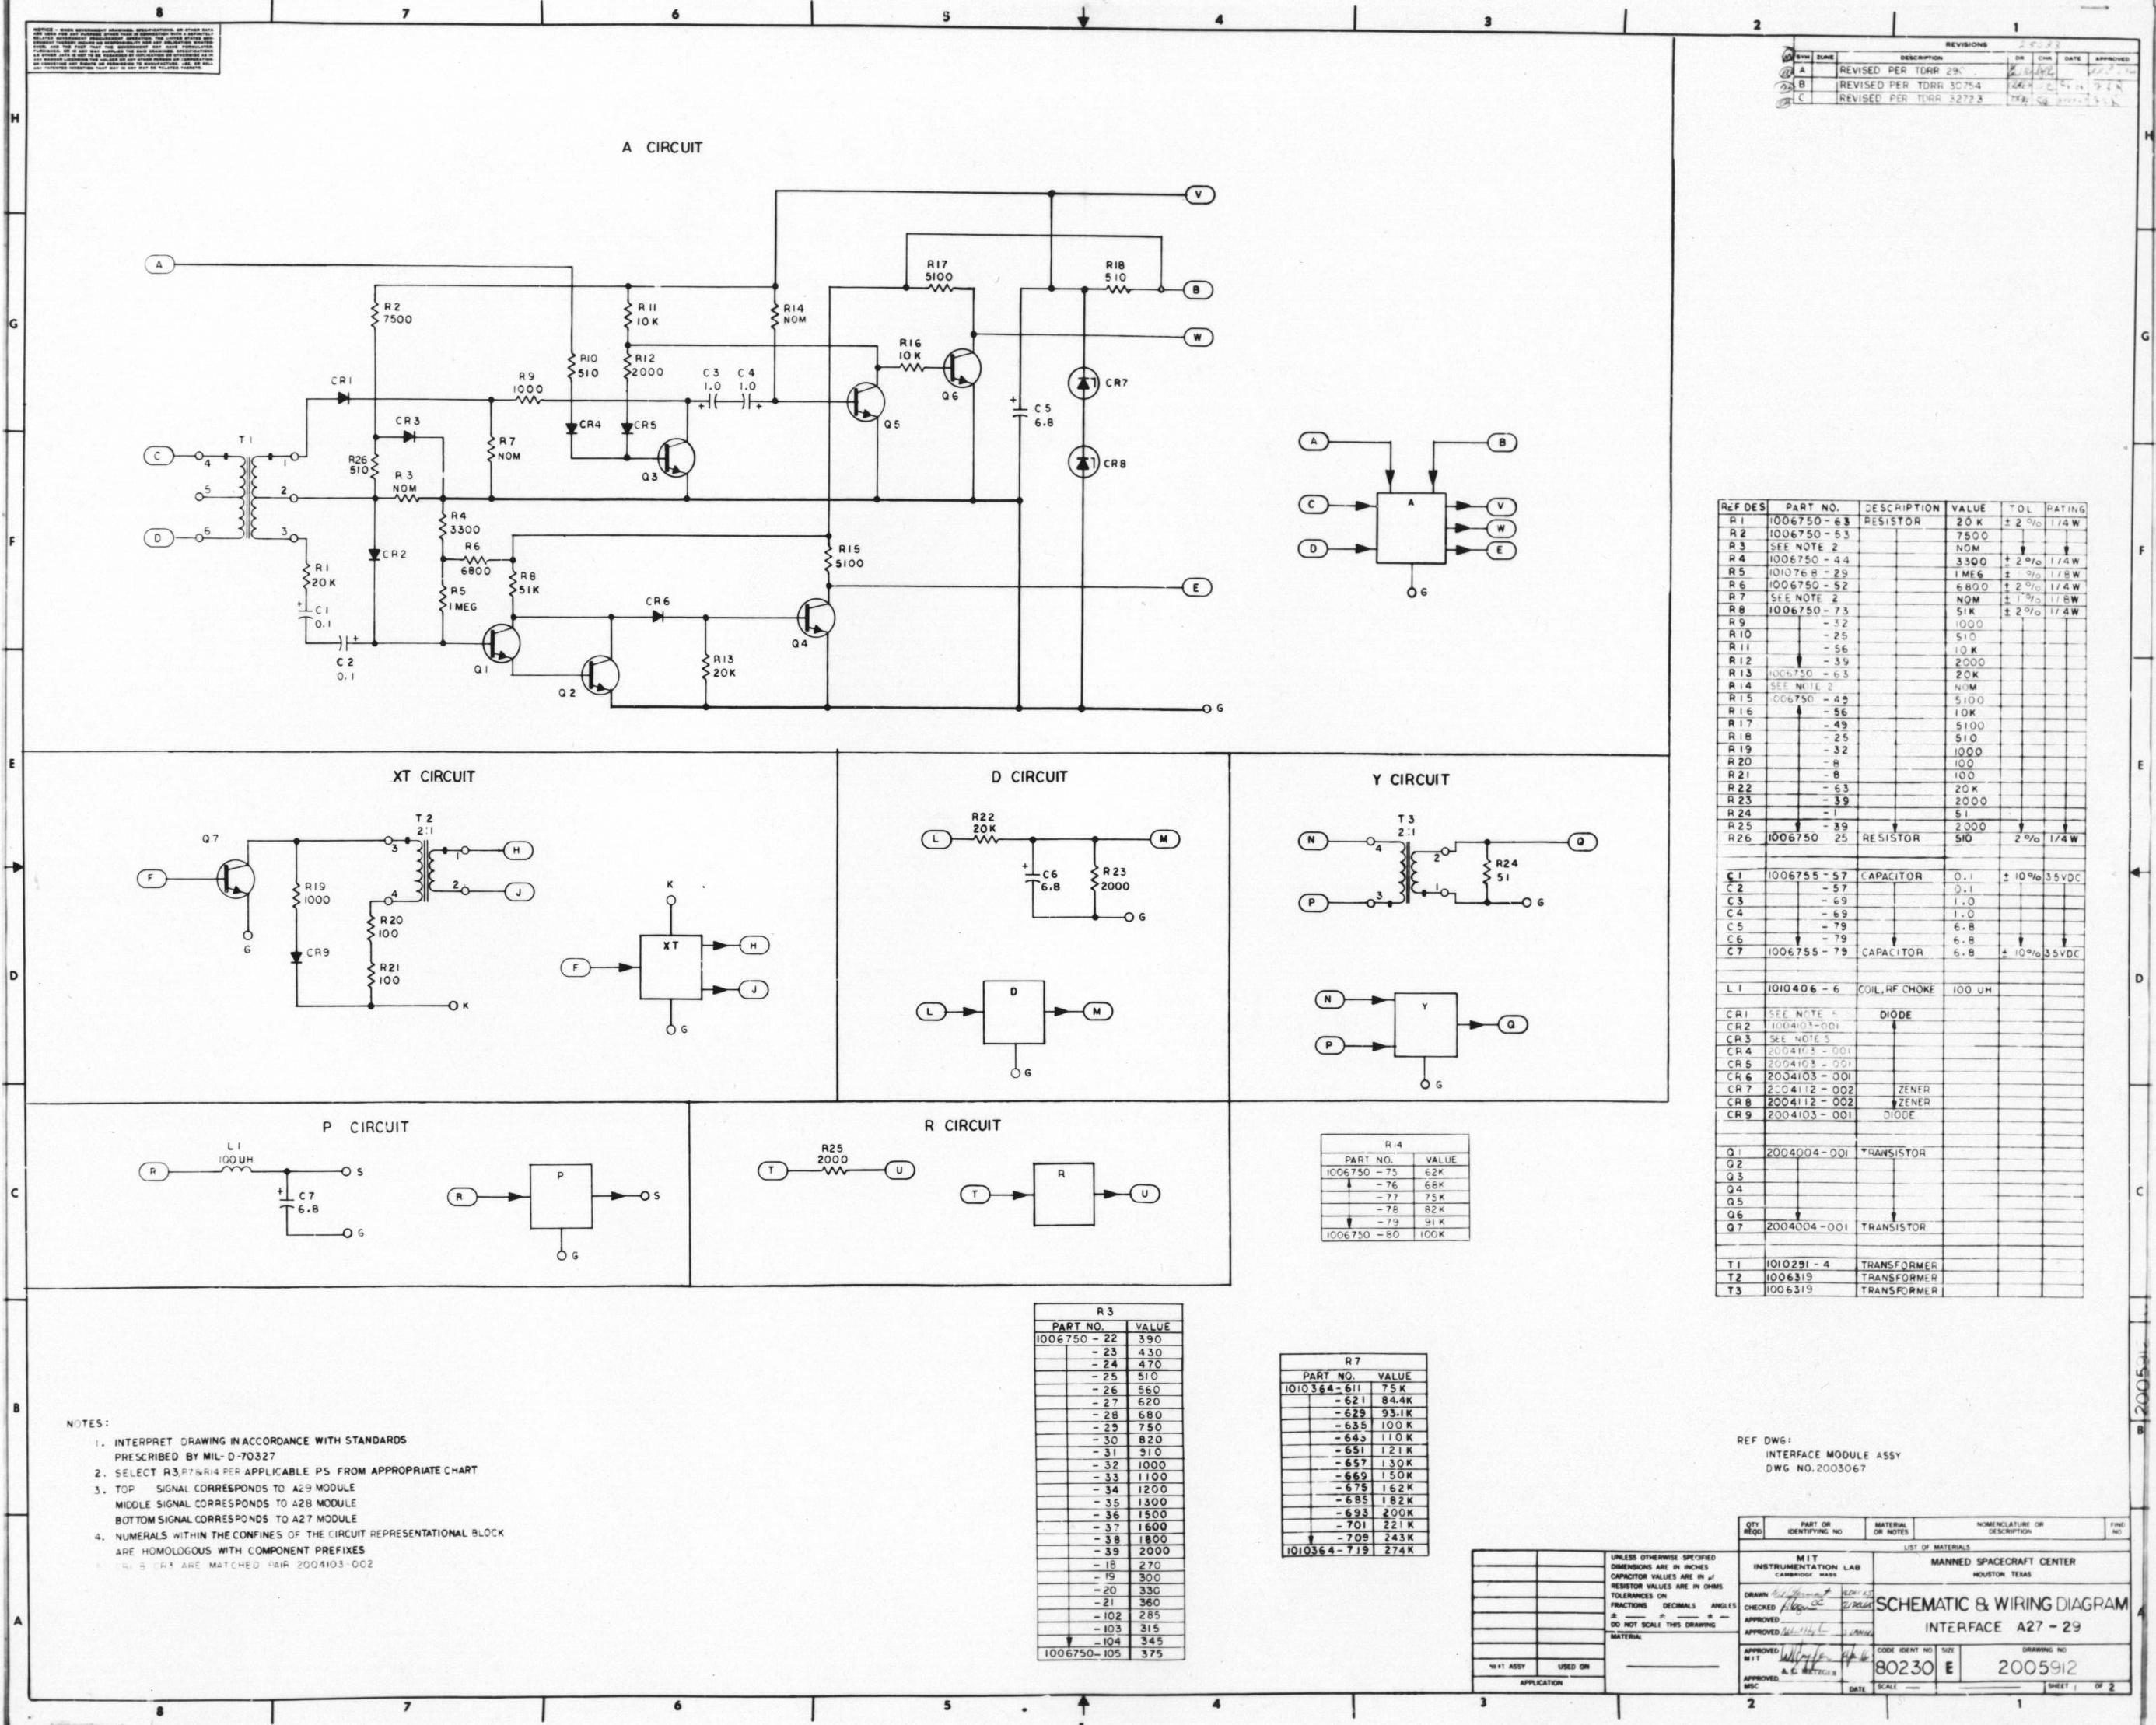 Apollo Guidance Computer Agc Schematics Main Circuit Drawing No